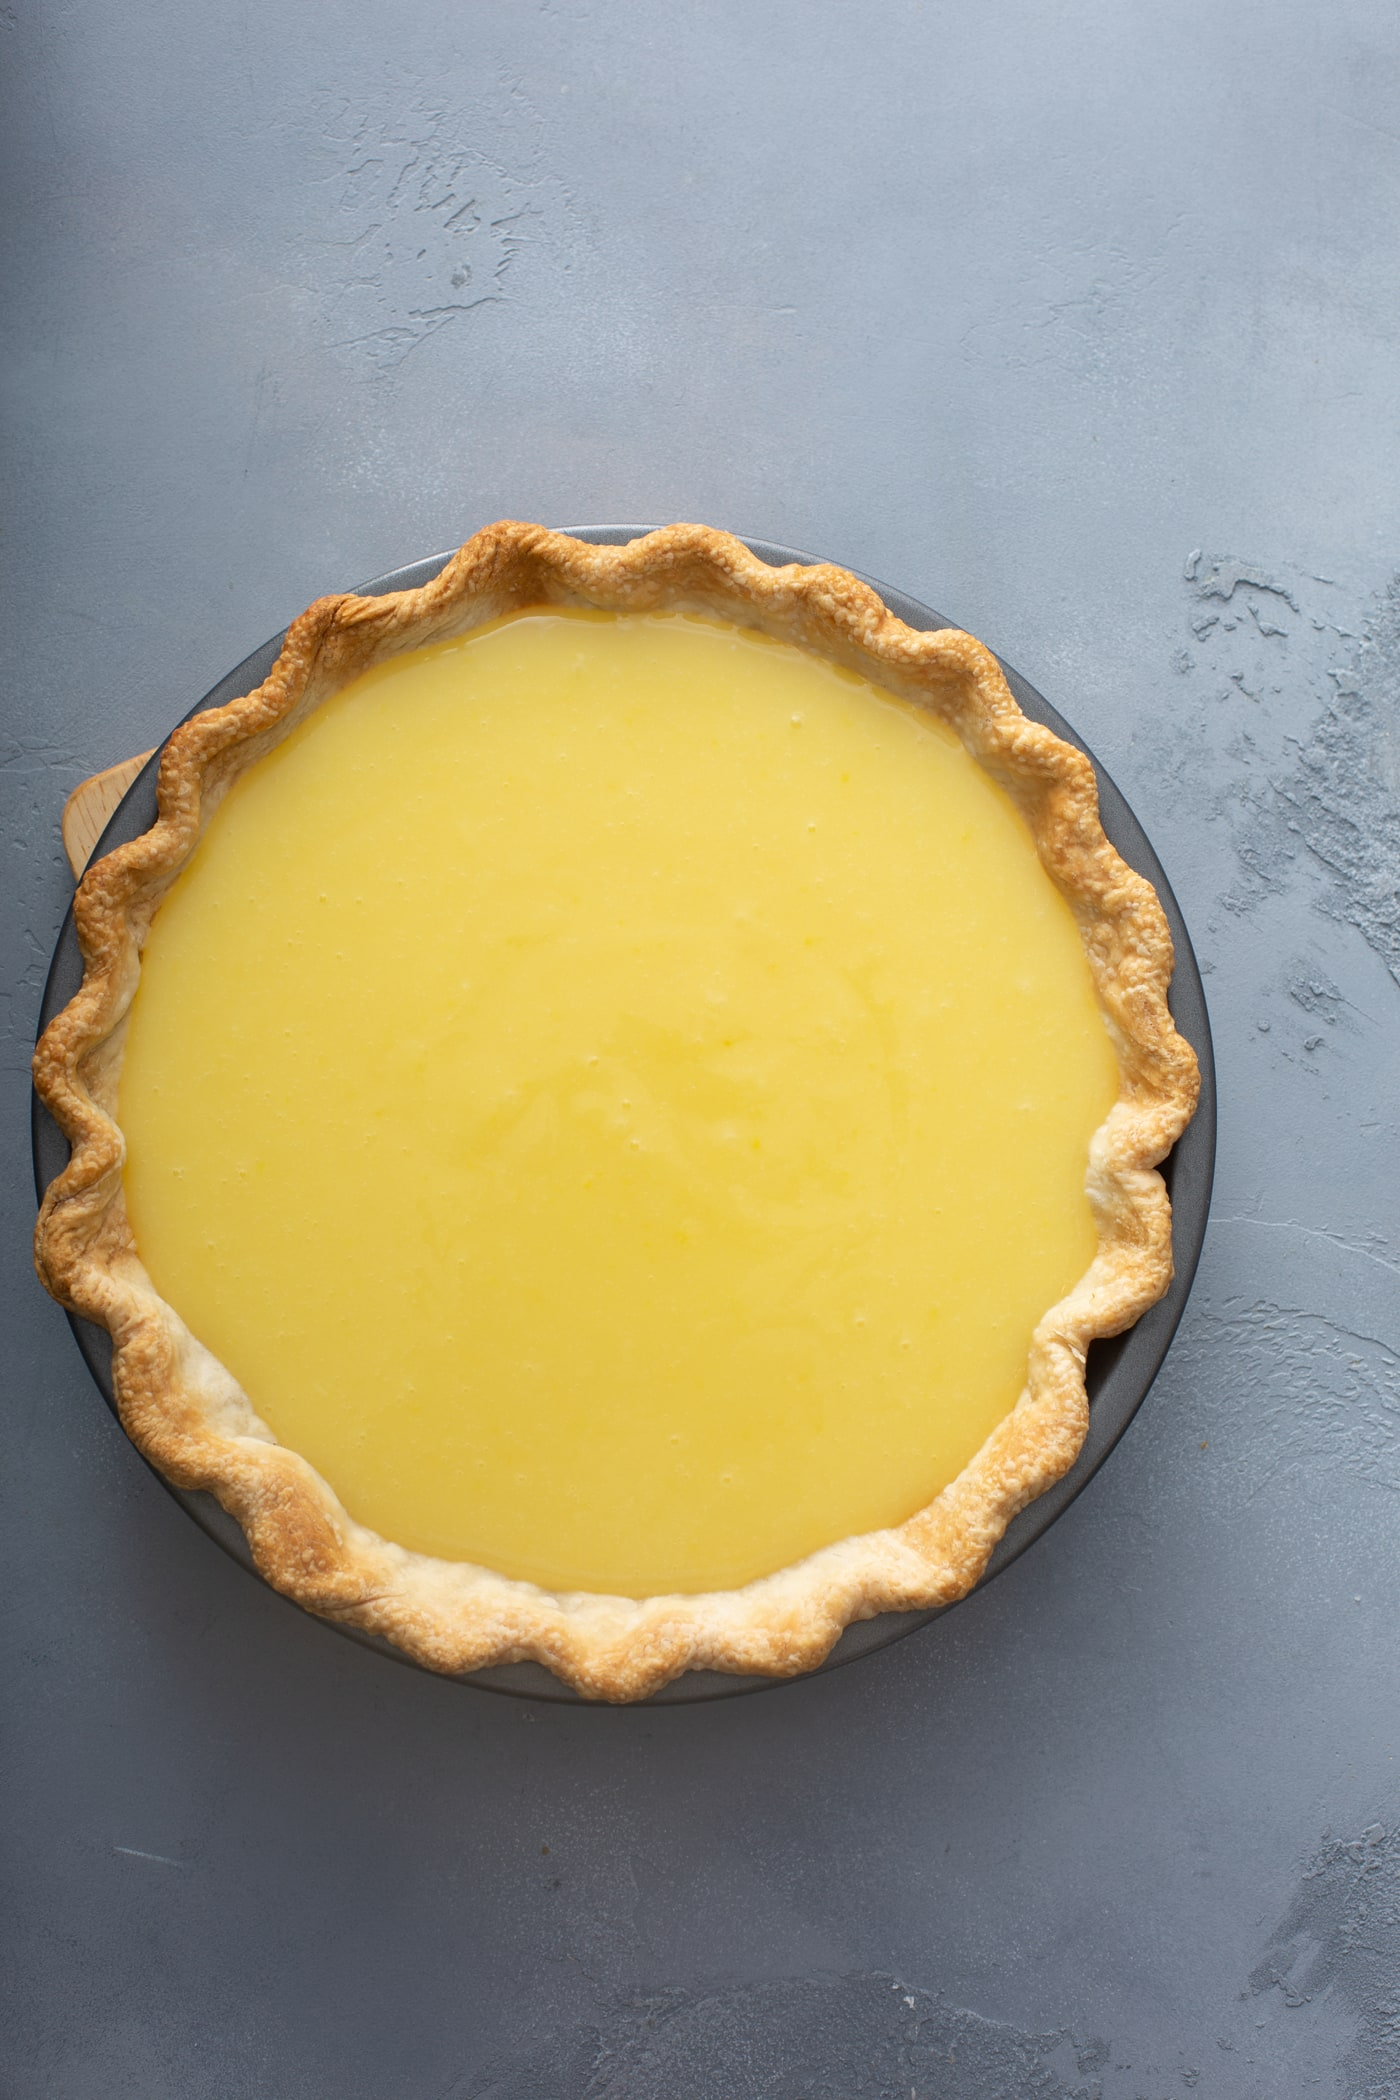 A picture or a lemon pie. The filling is bright yellow and the crust is light golden brown.